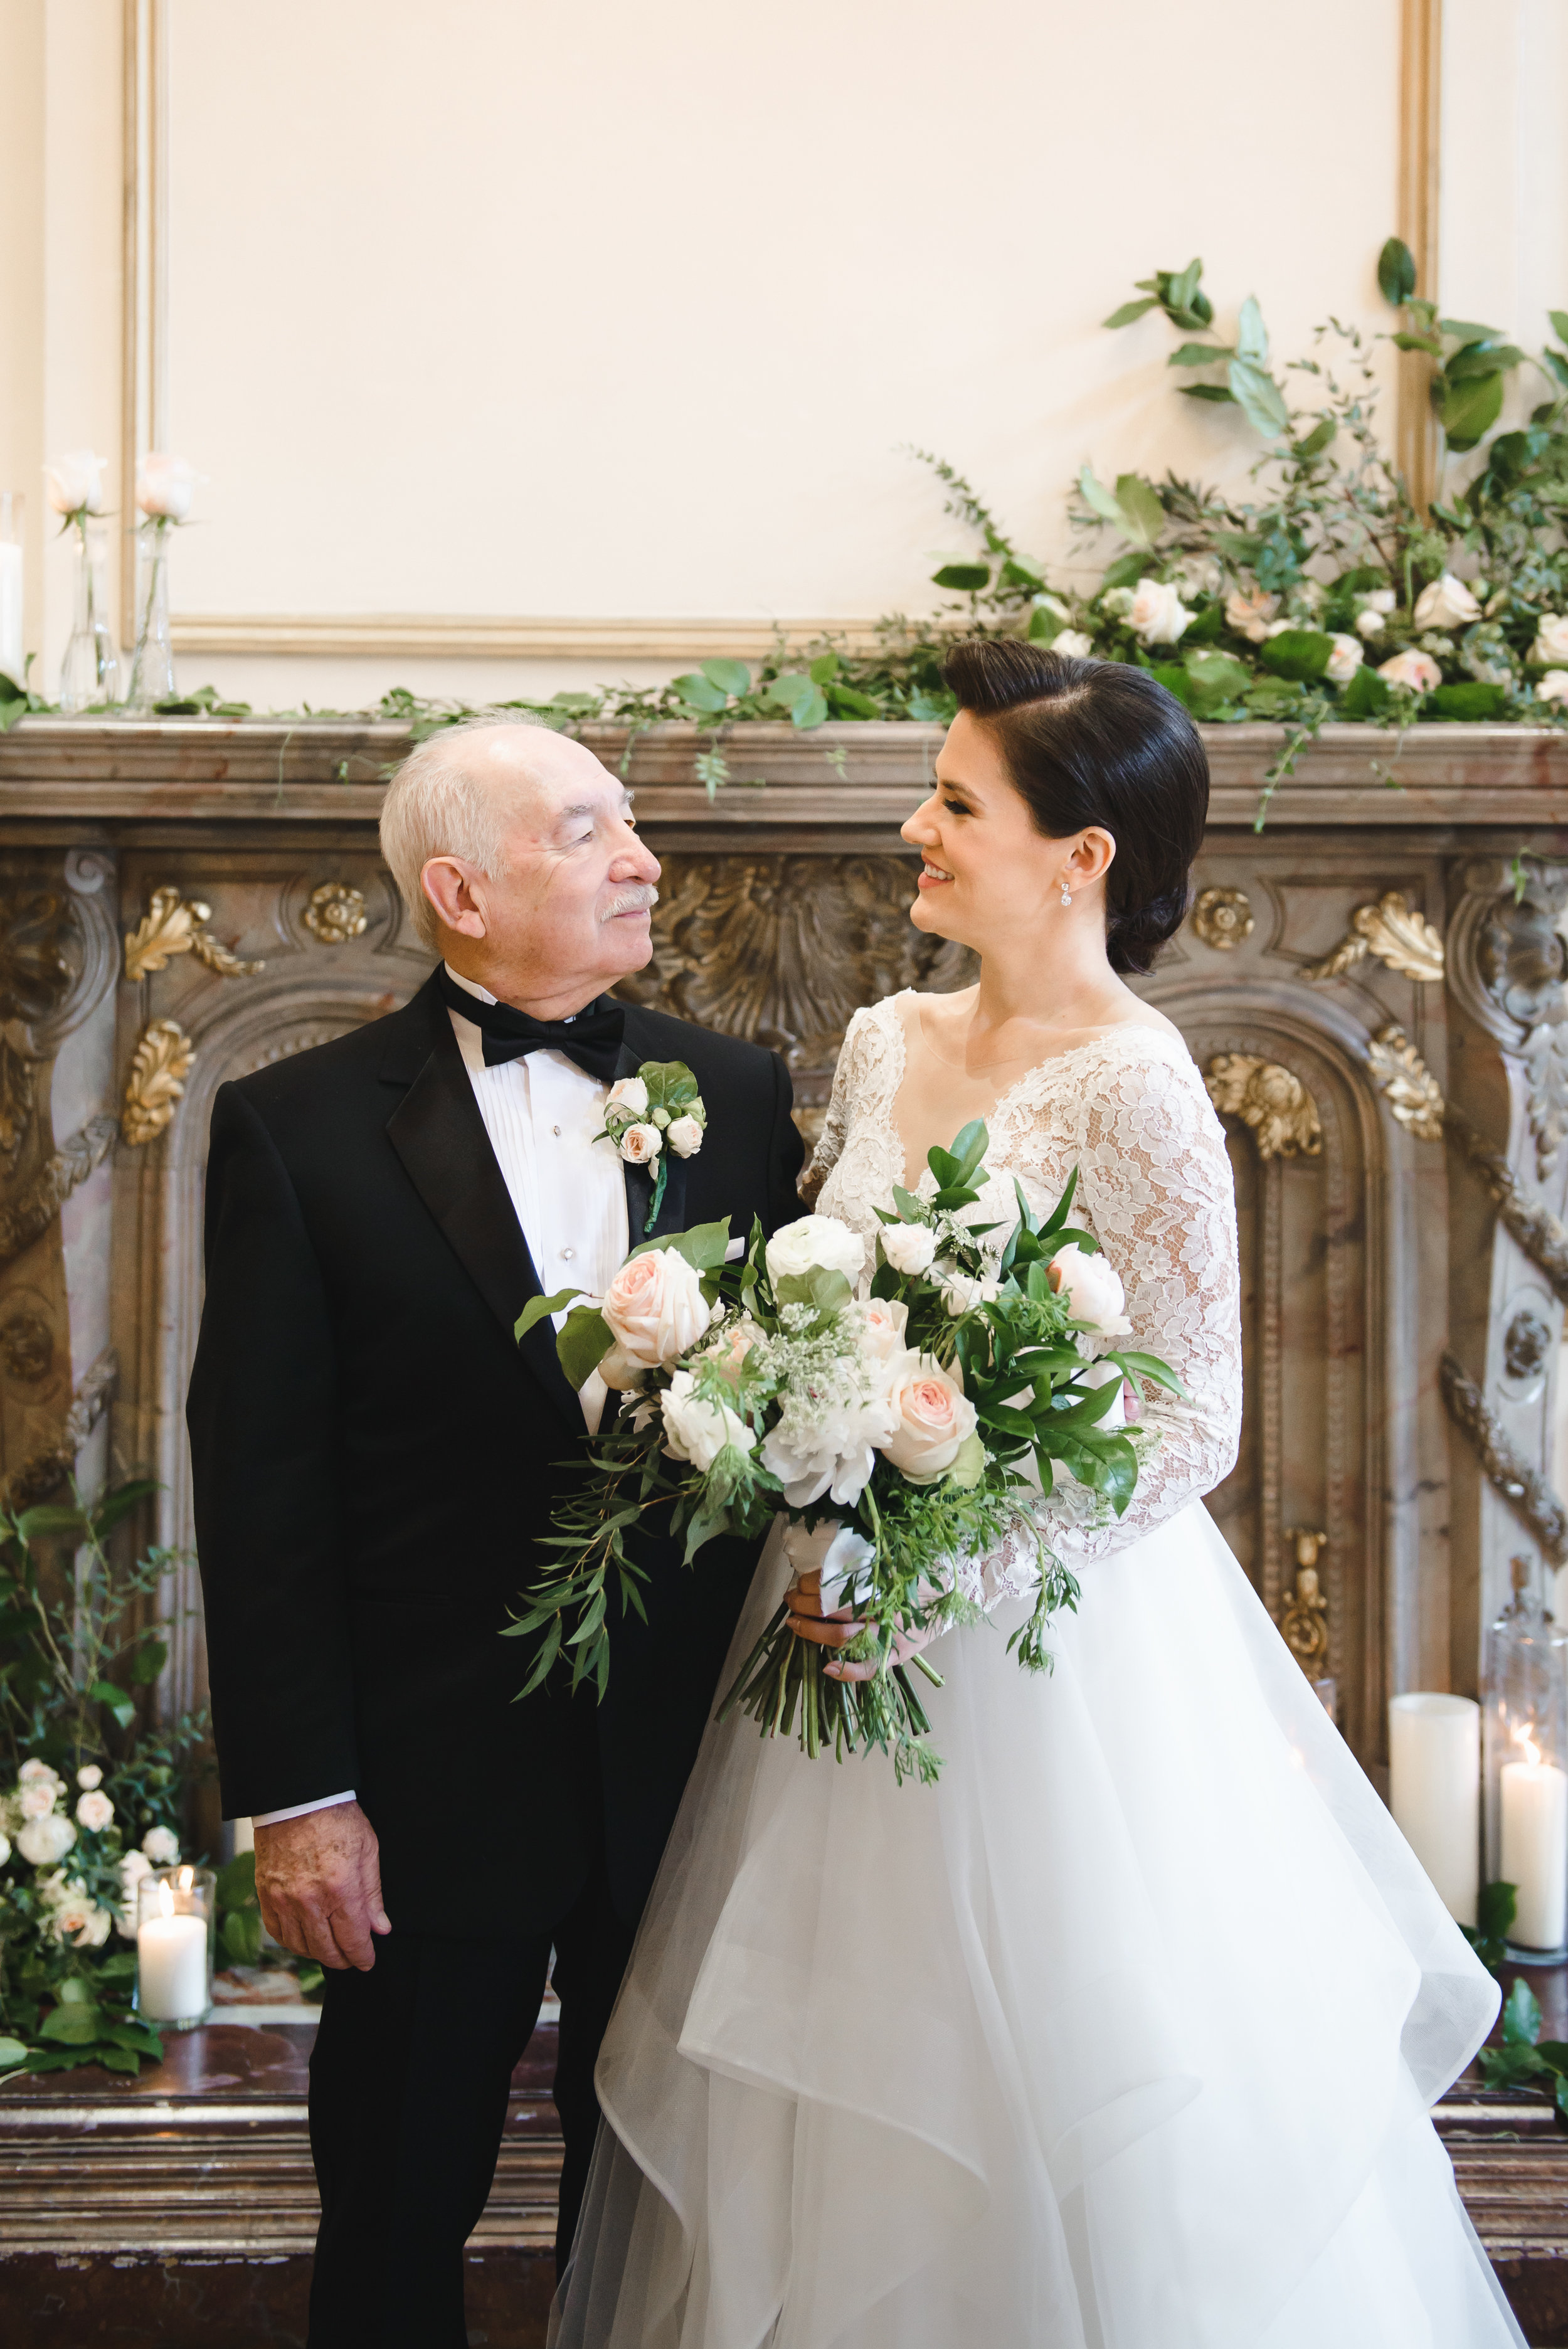 daughter father at wedding with blush bouquet #lrqcfloral #dtlawedding.jpg